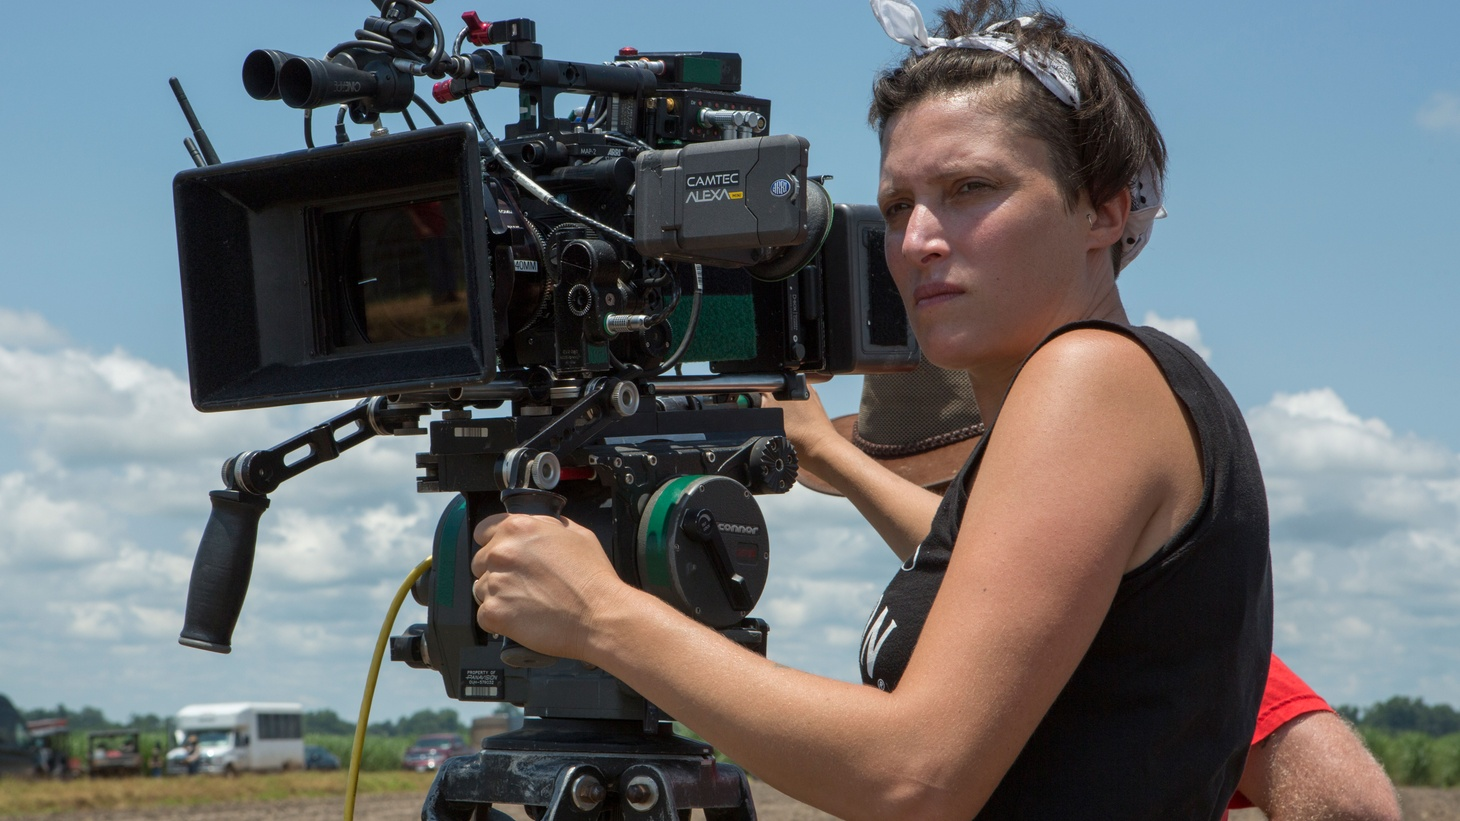 'Mudbound' director of photography Rachel Morrison just made history as the first woman nominated for an Academy Award for best cinematography.